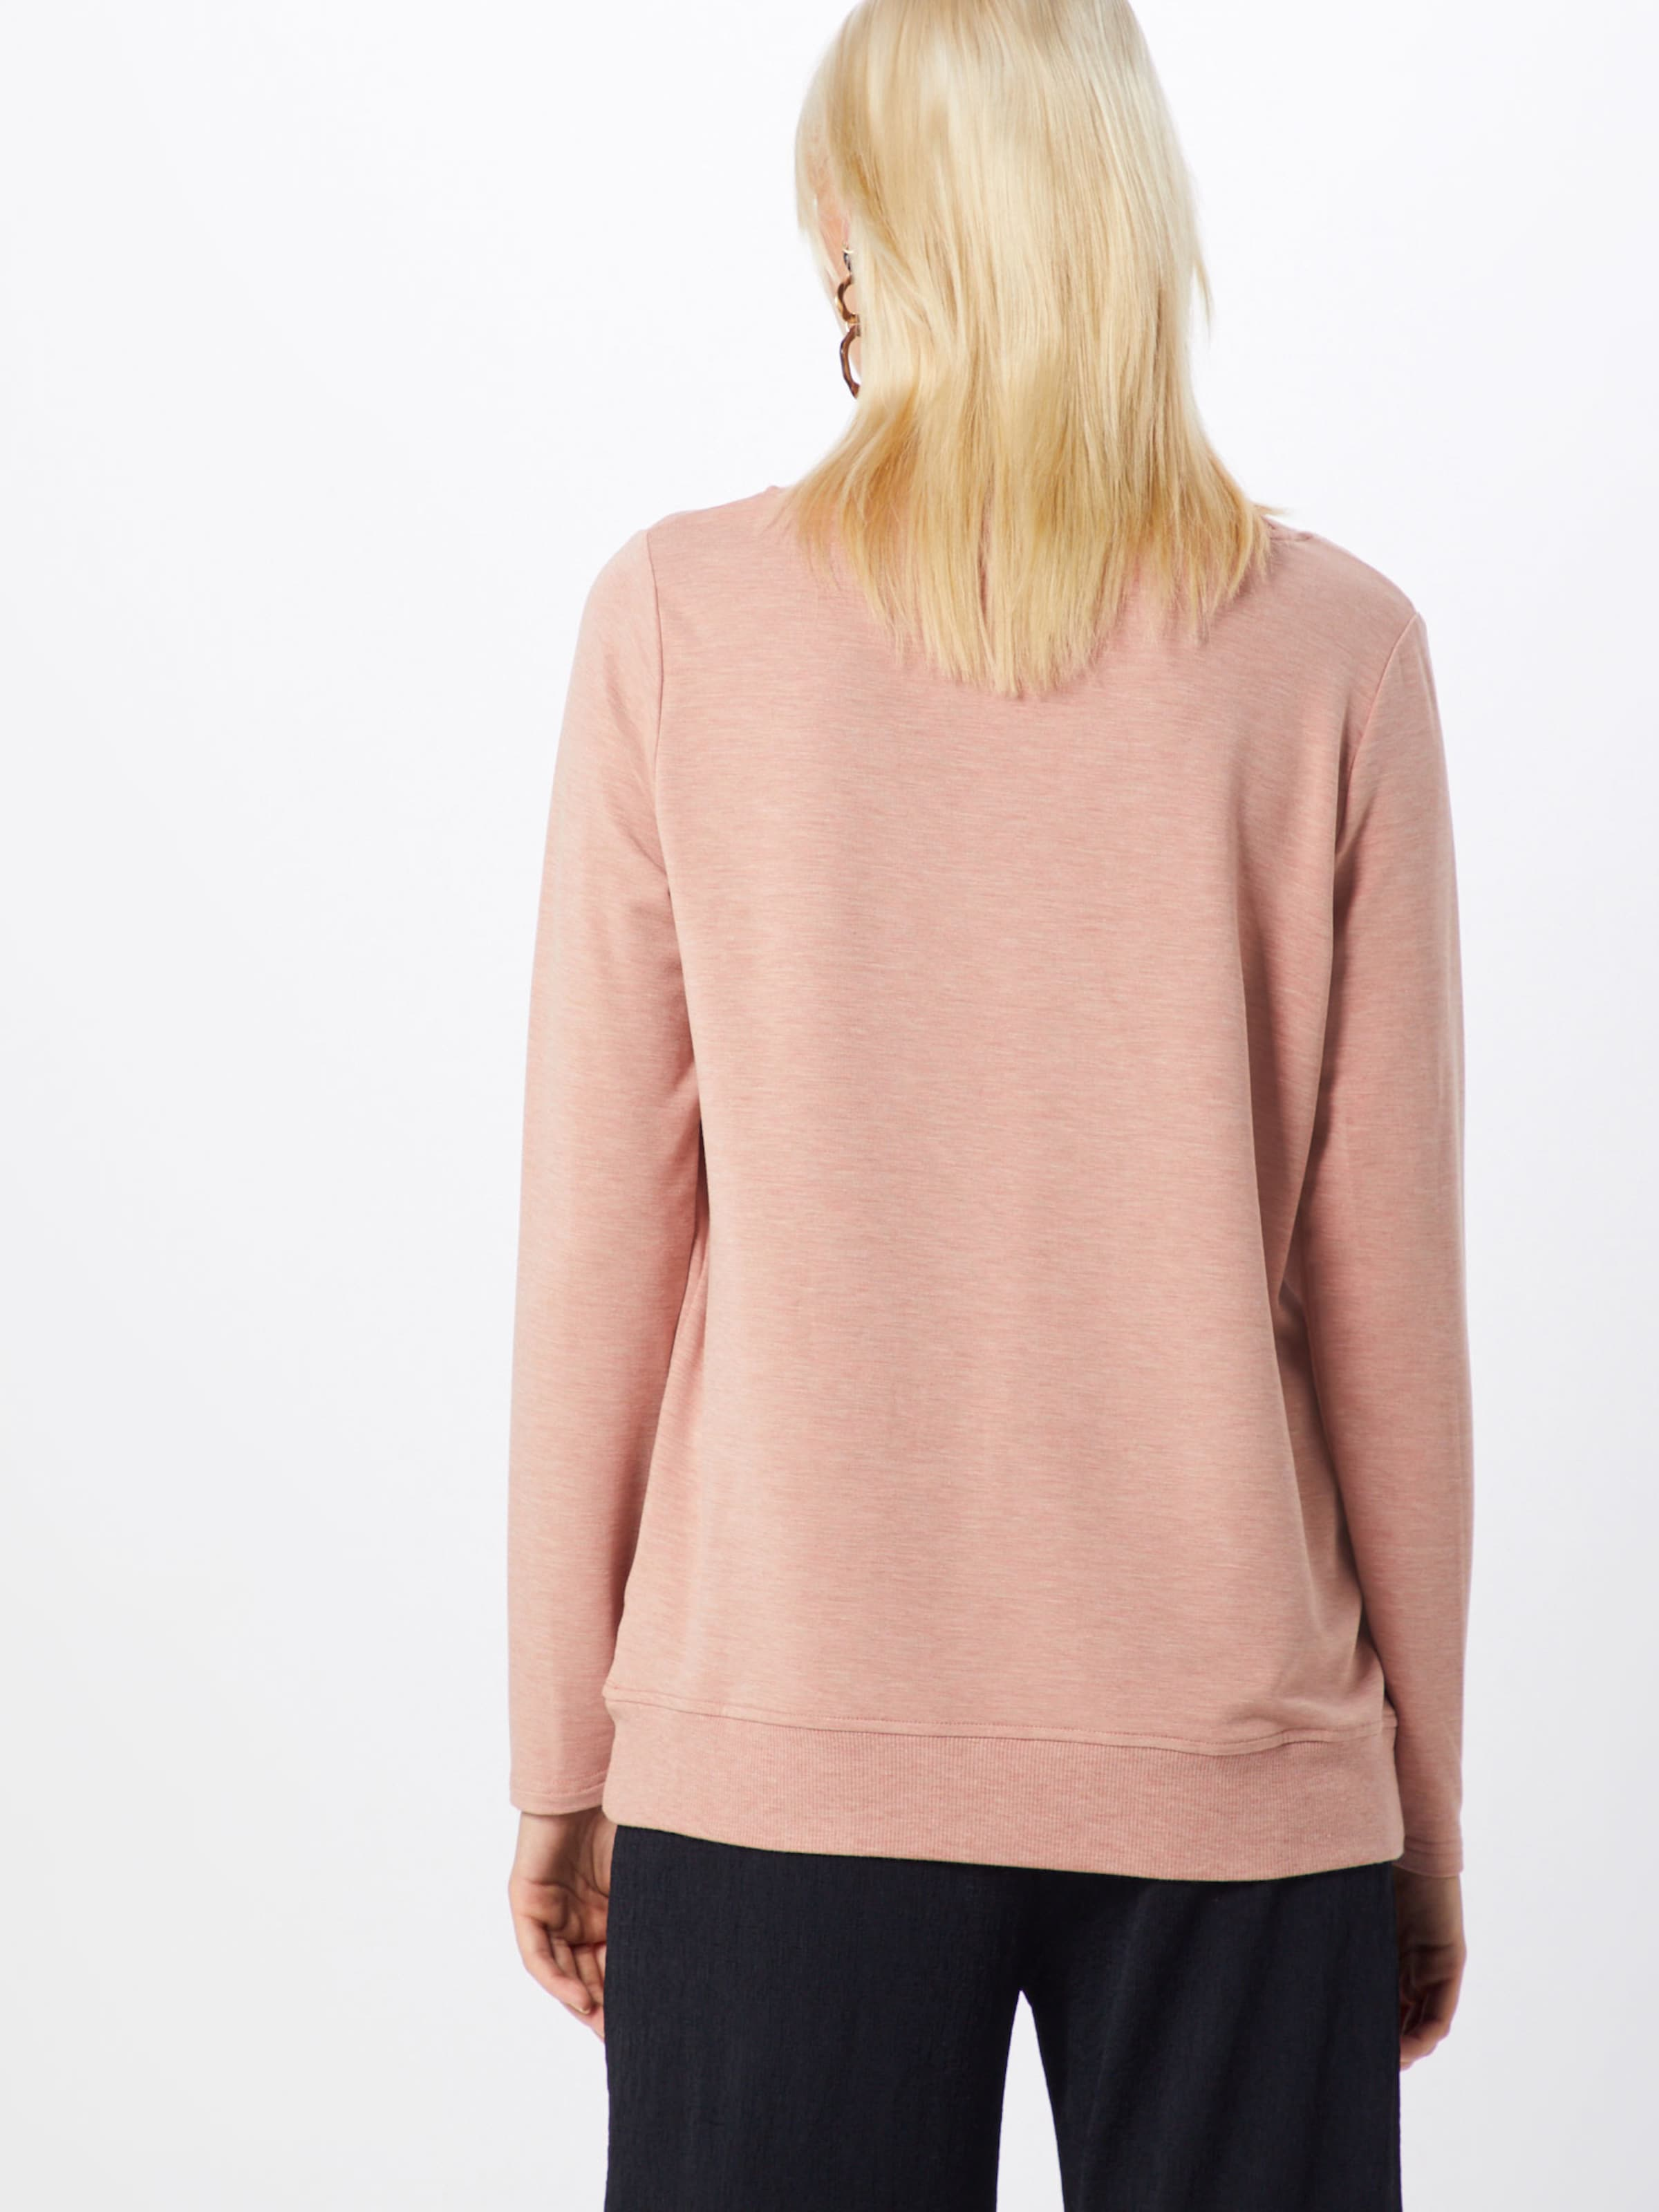 Pink Pullover In Terry' 'ls Neck Banana Baby Republic Vee pUMVSz